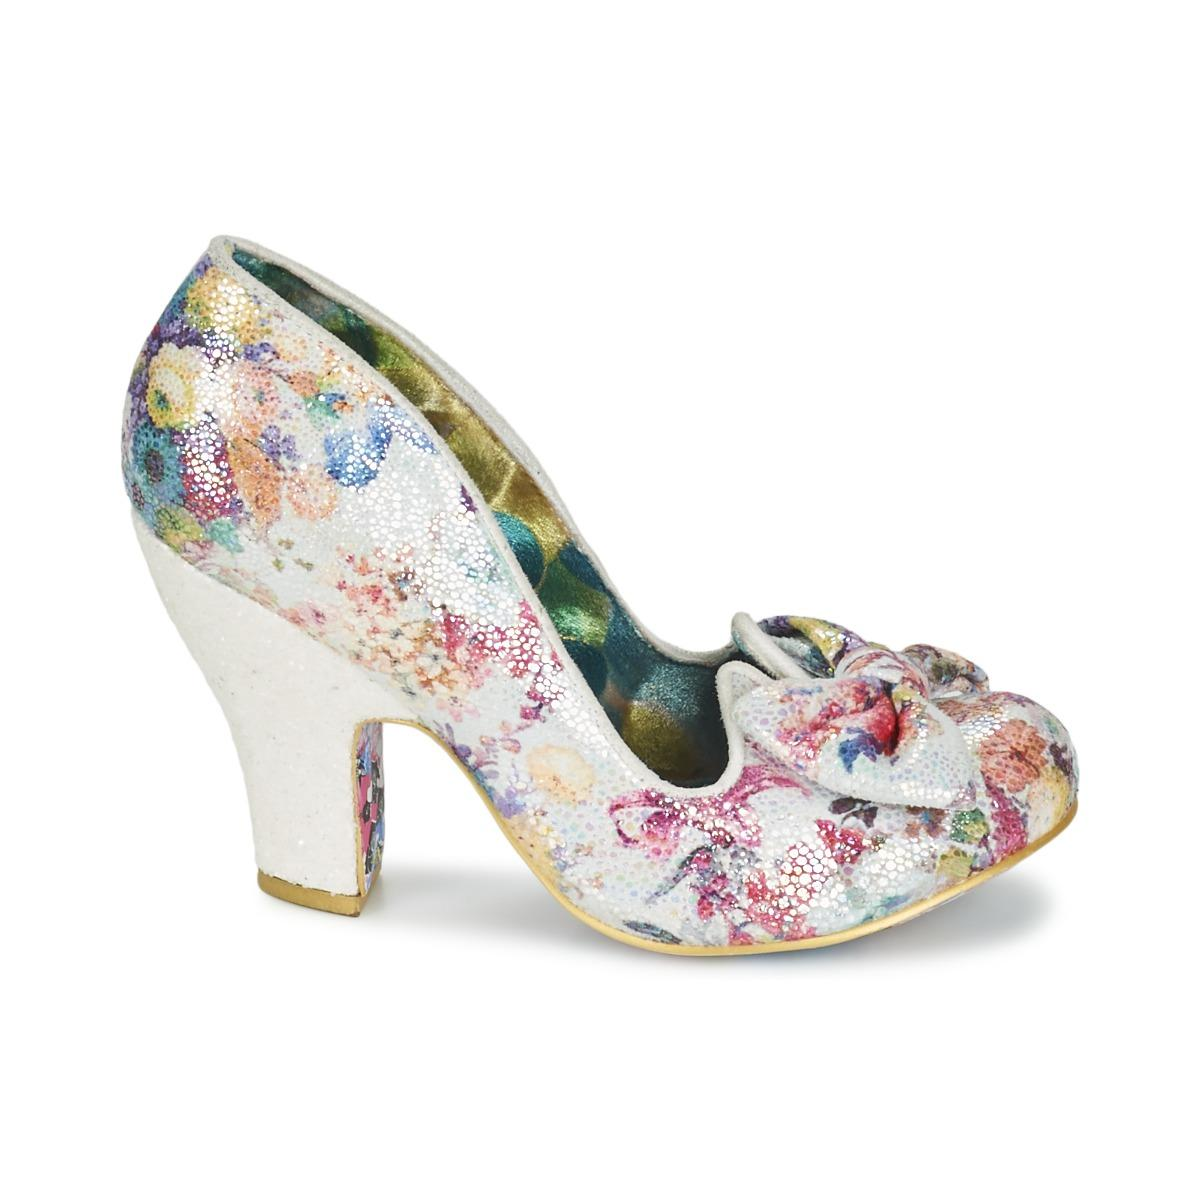 d2df9be388b6 Irregular Choice - Multicolor Nick Of Time Heels - Lyst. View fullscreen